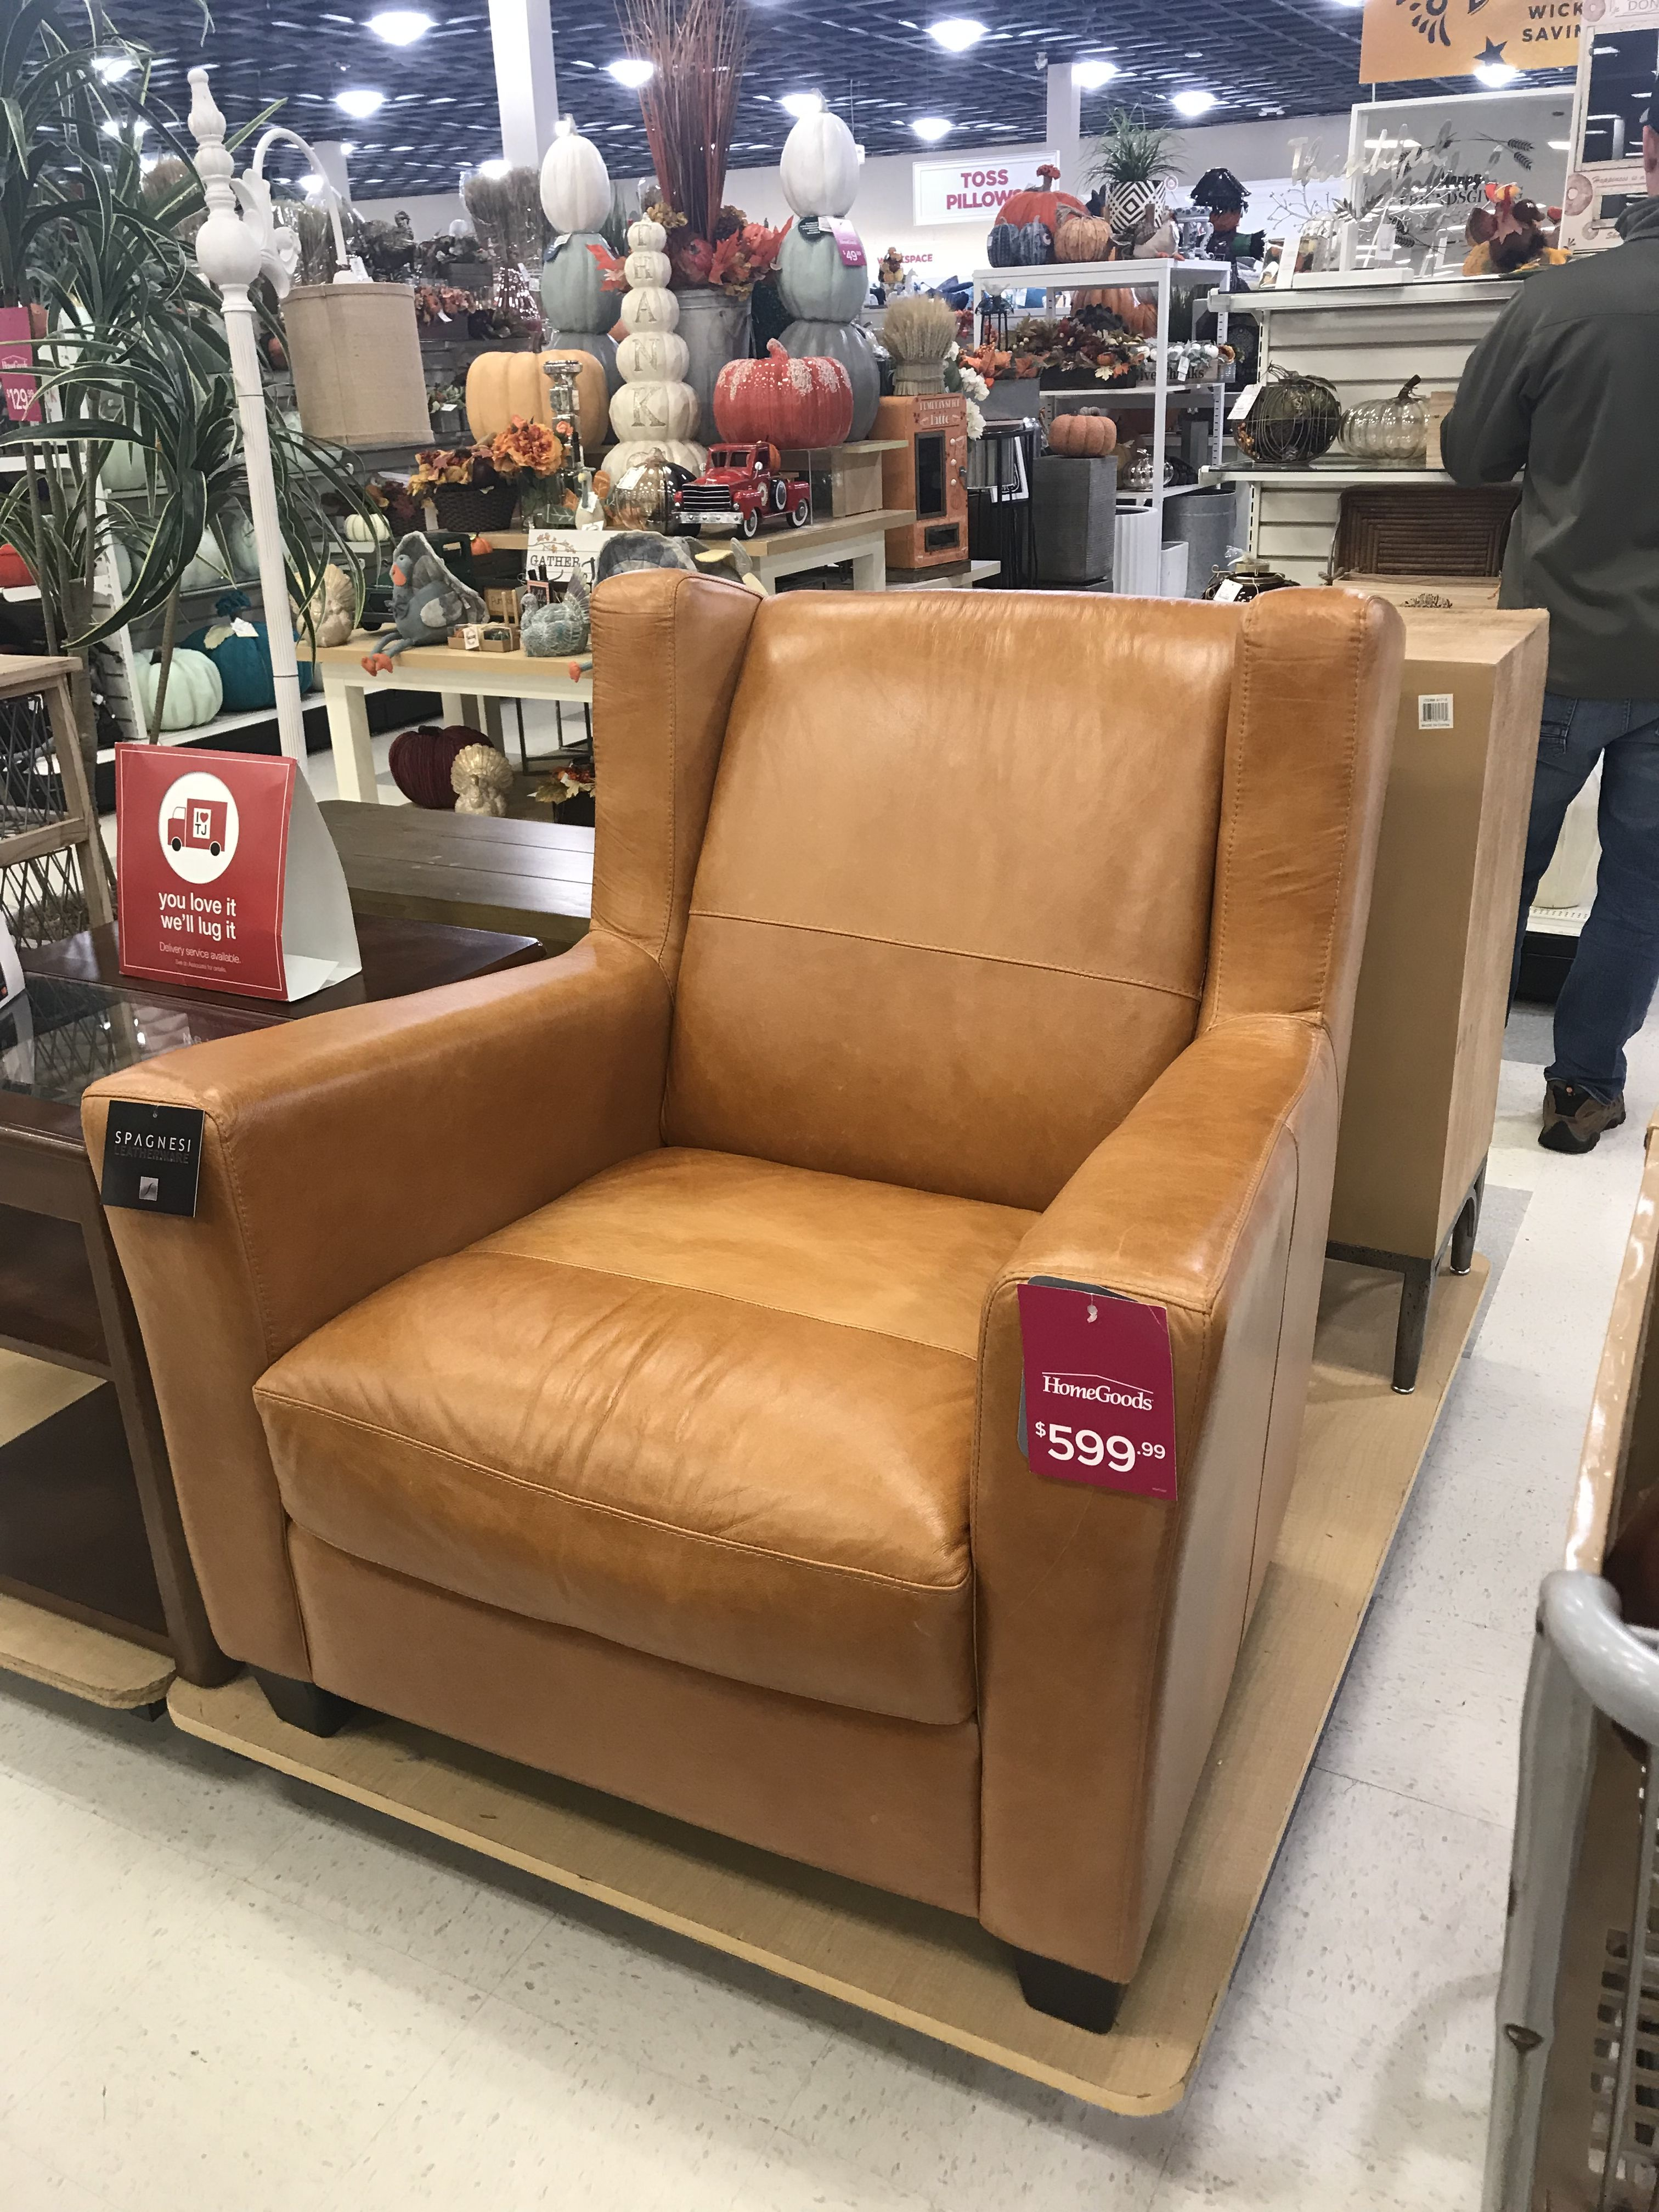 spagnesi leather chair